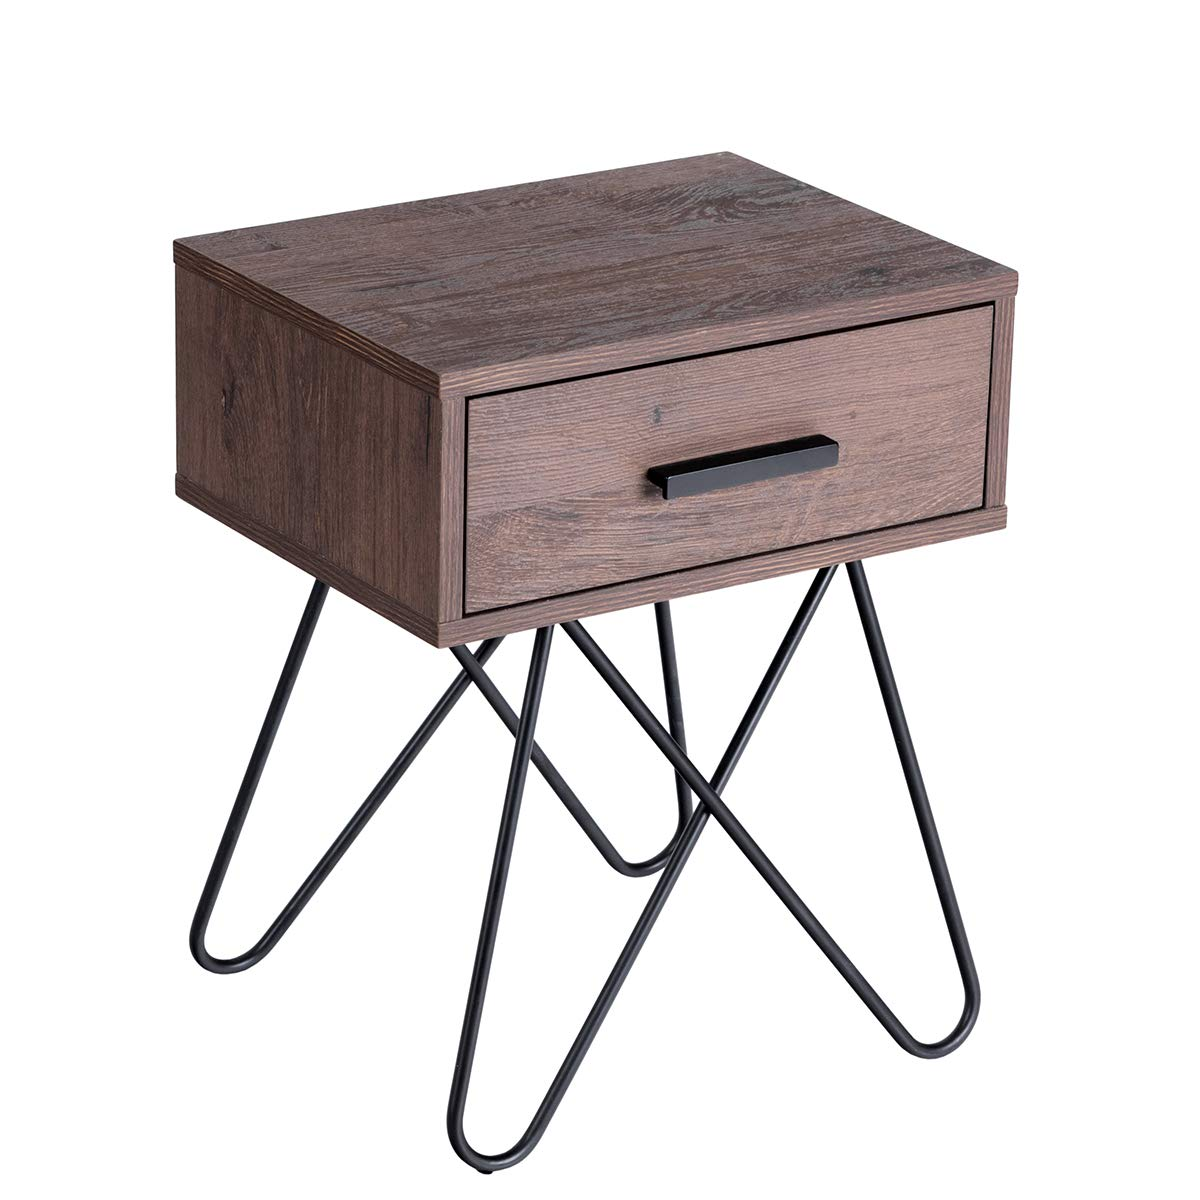 Giantex Nightstand W/Steel Pipe and Handled Drawer Mid-Century Accent Table Solid and Stable Frame for Living Room Bedroom Beside Sofa Side End Table (1, Brown) by Giantex